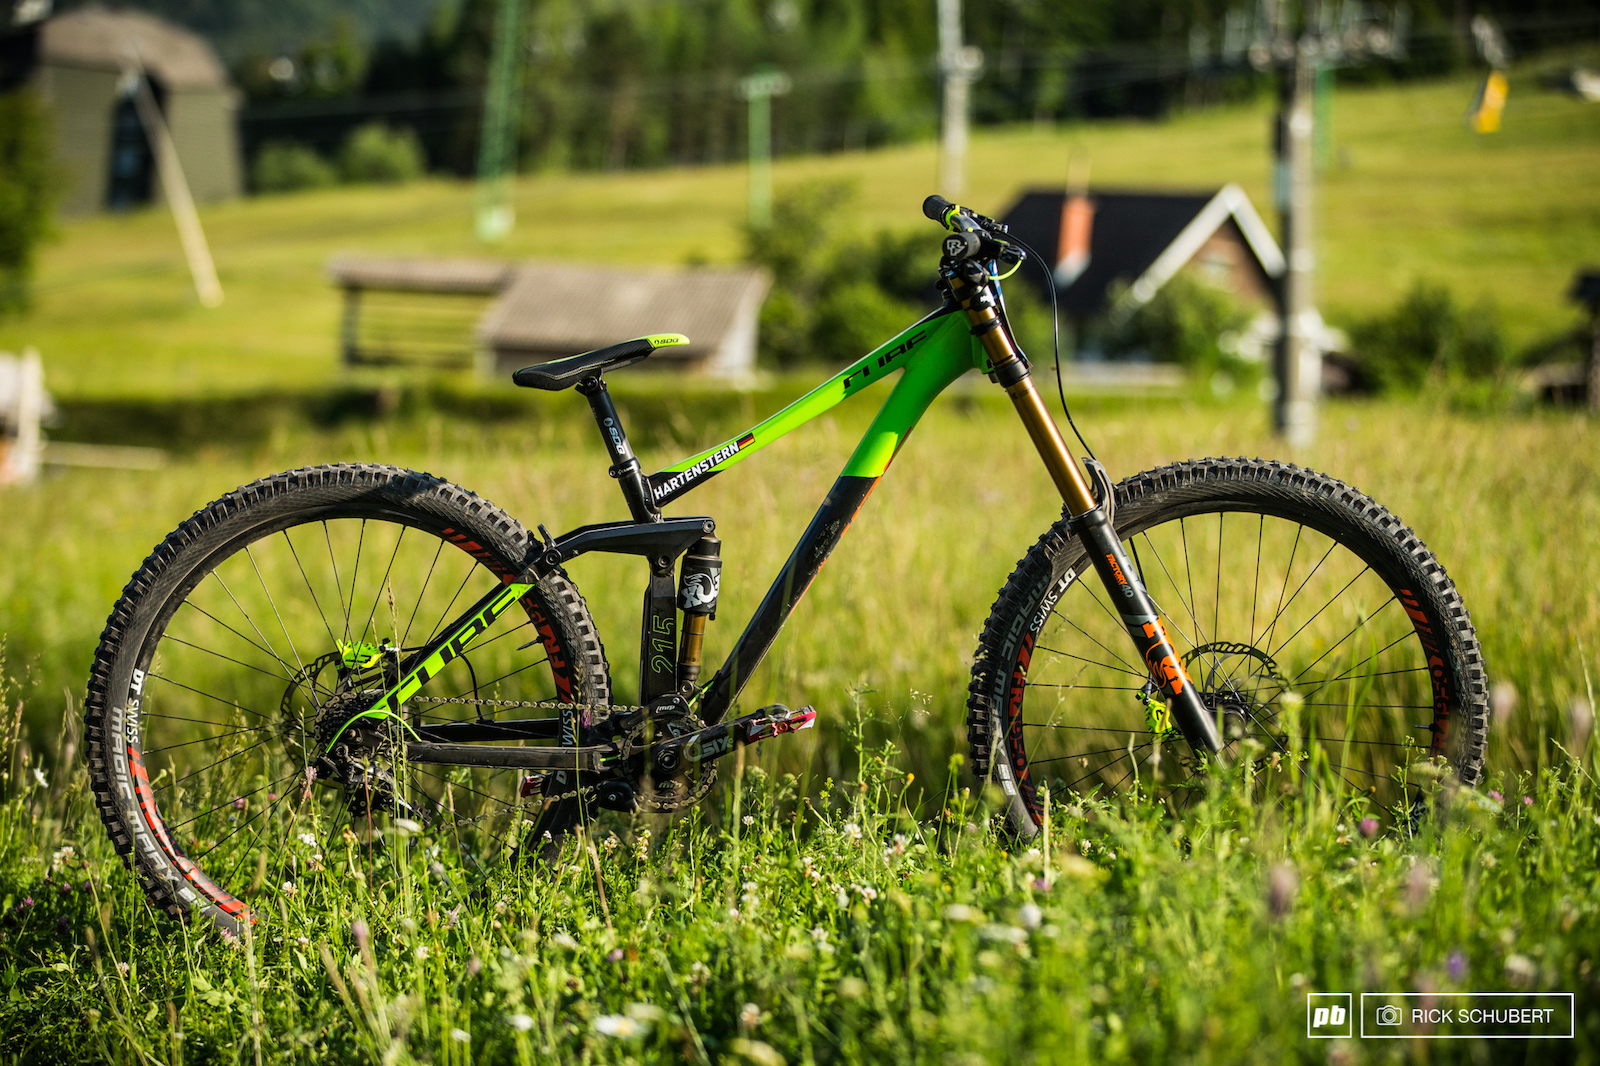 Max s 29er is still a prototype but as he mentioned close to production